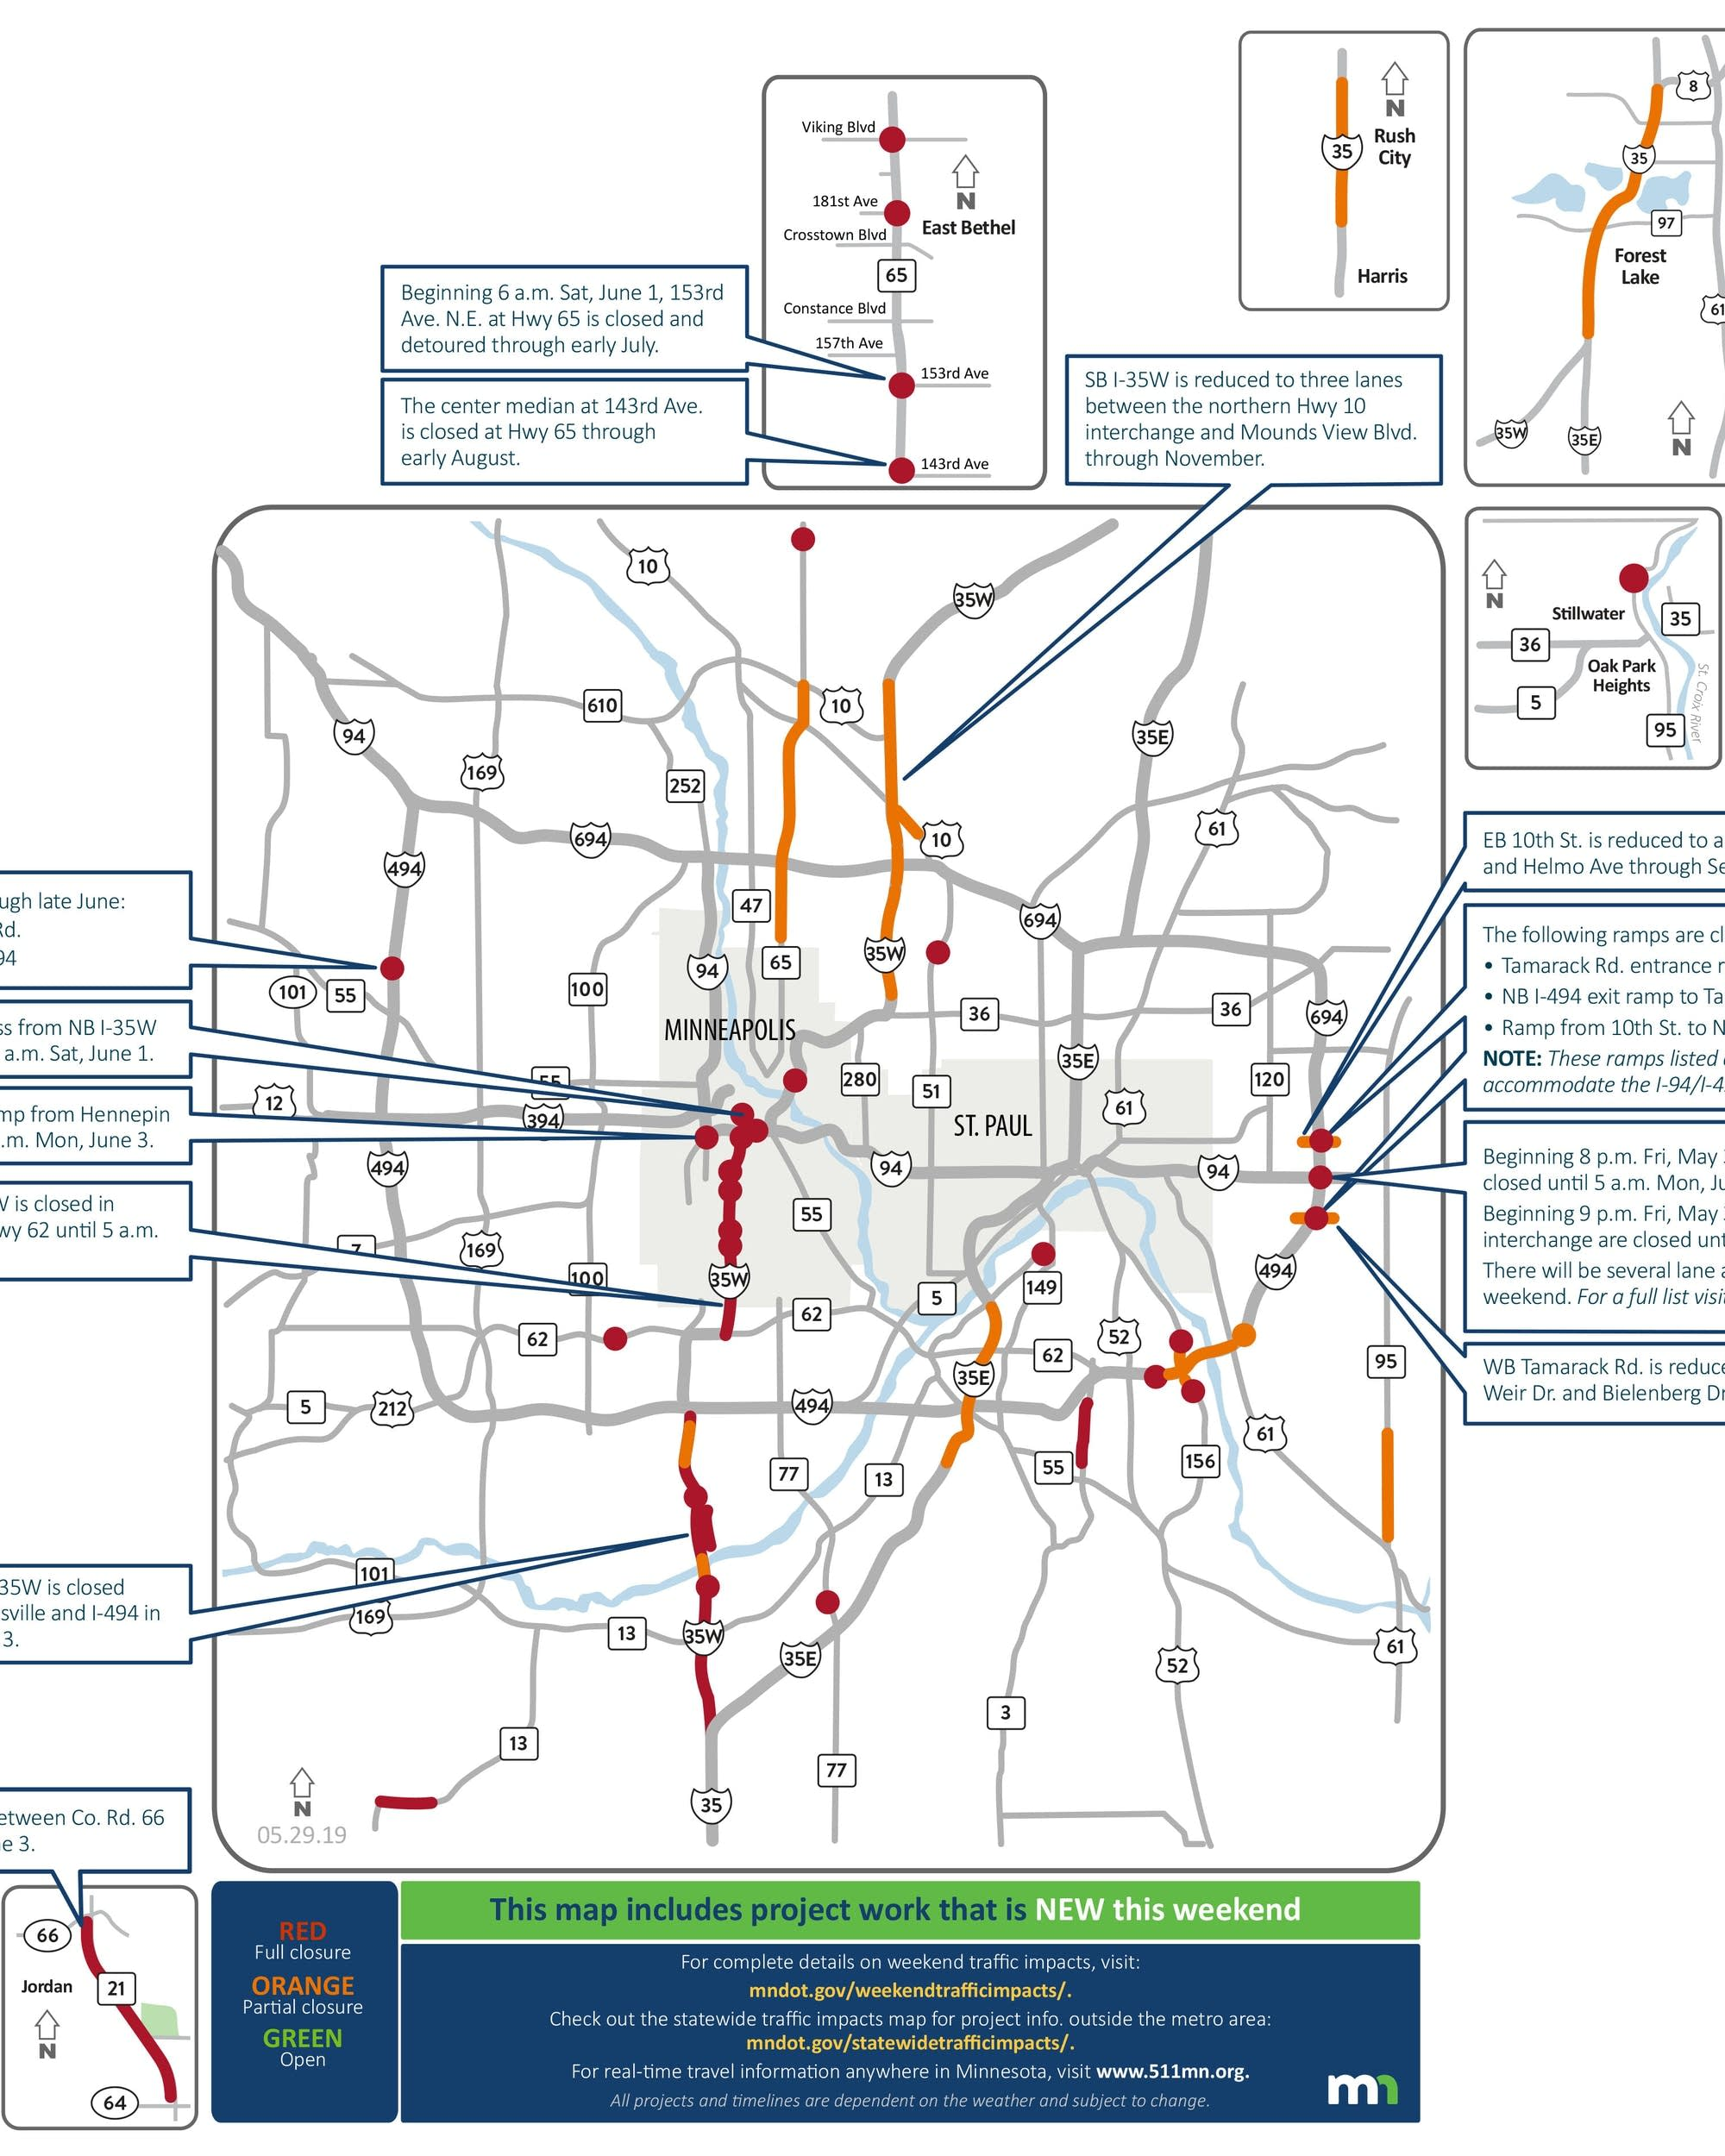 Twin Cities weekend road closures: I-35W and 3 big street